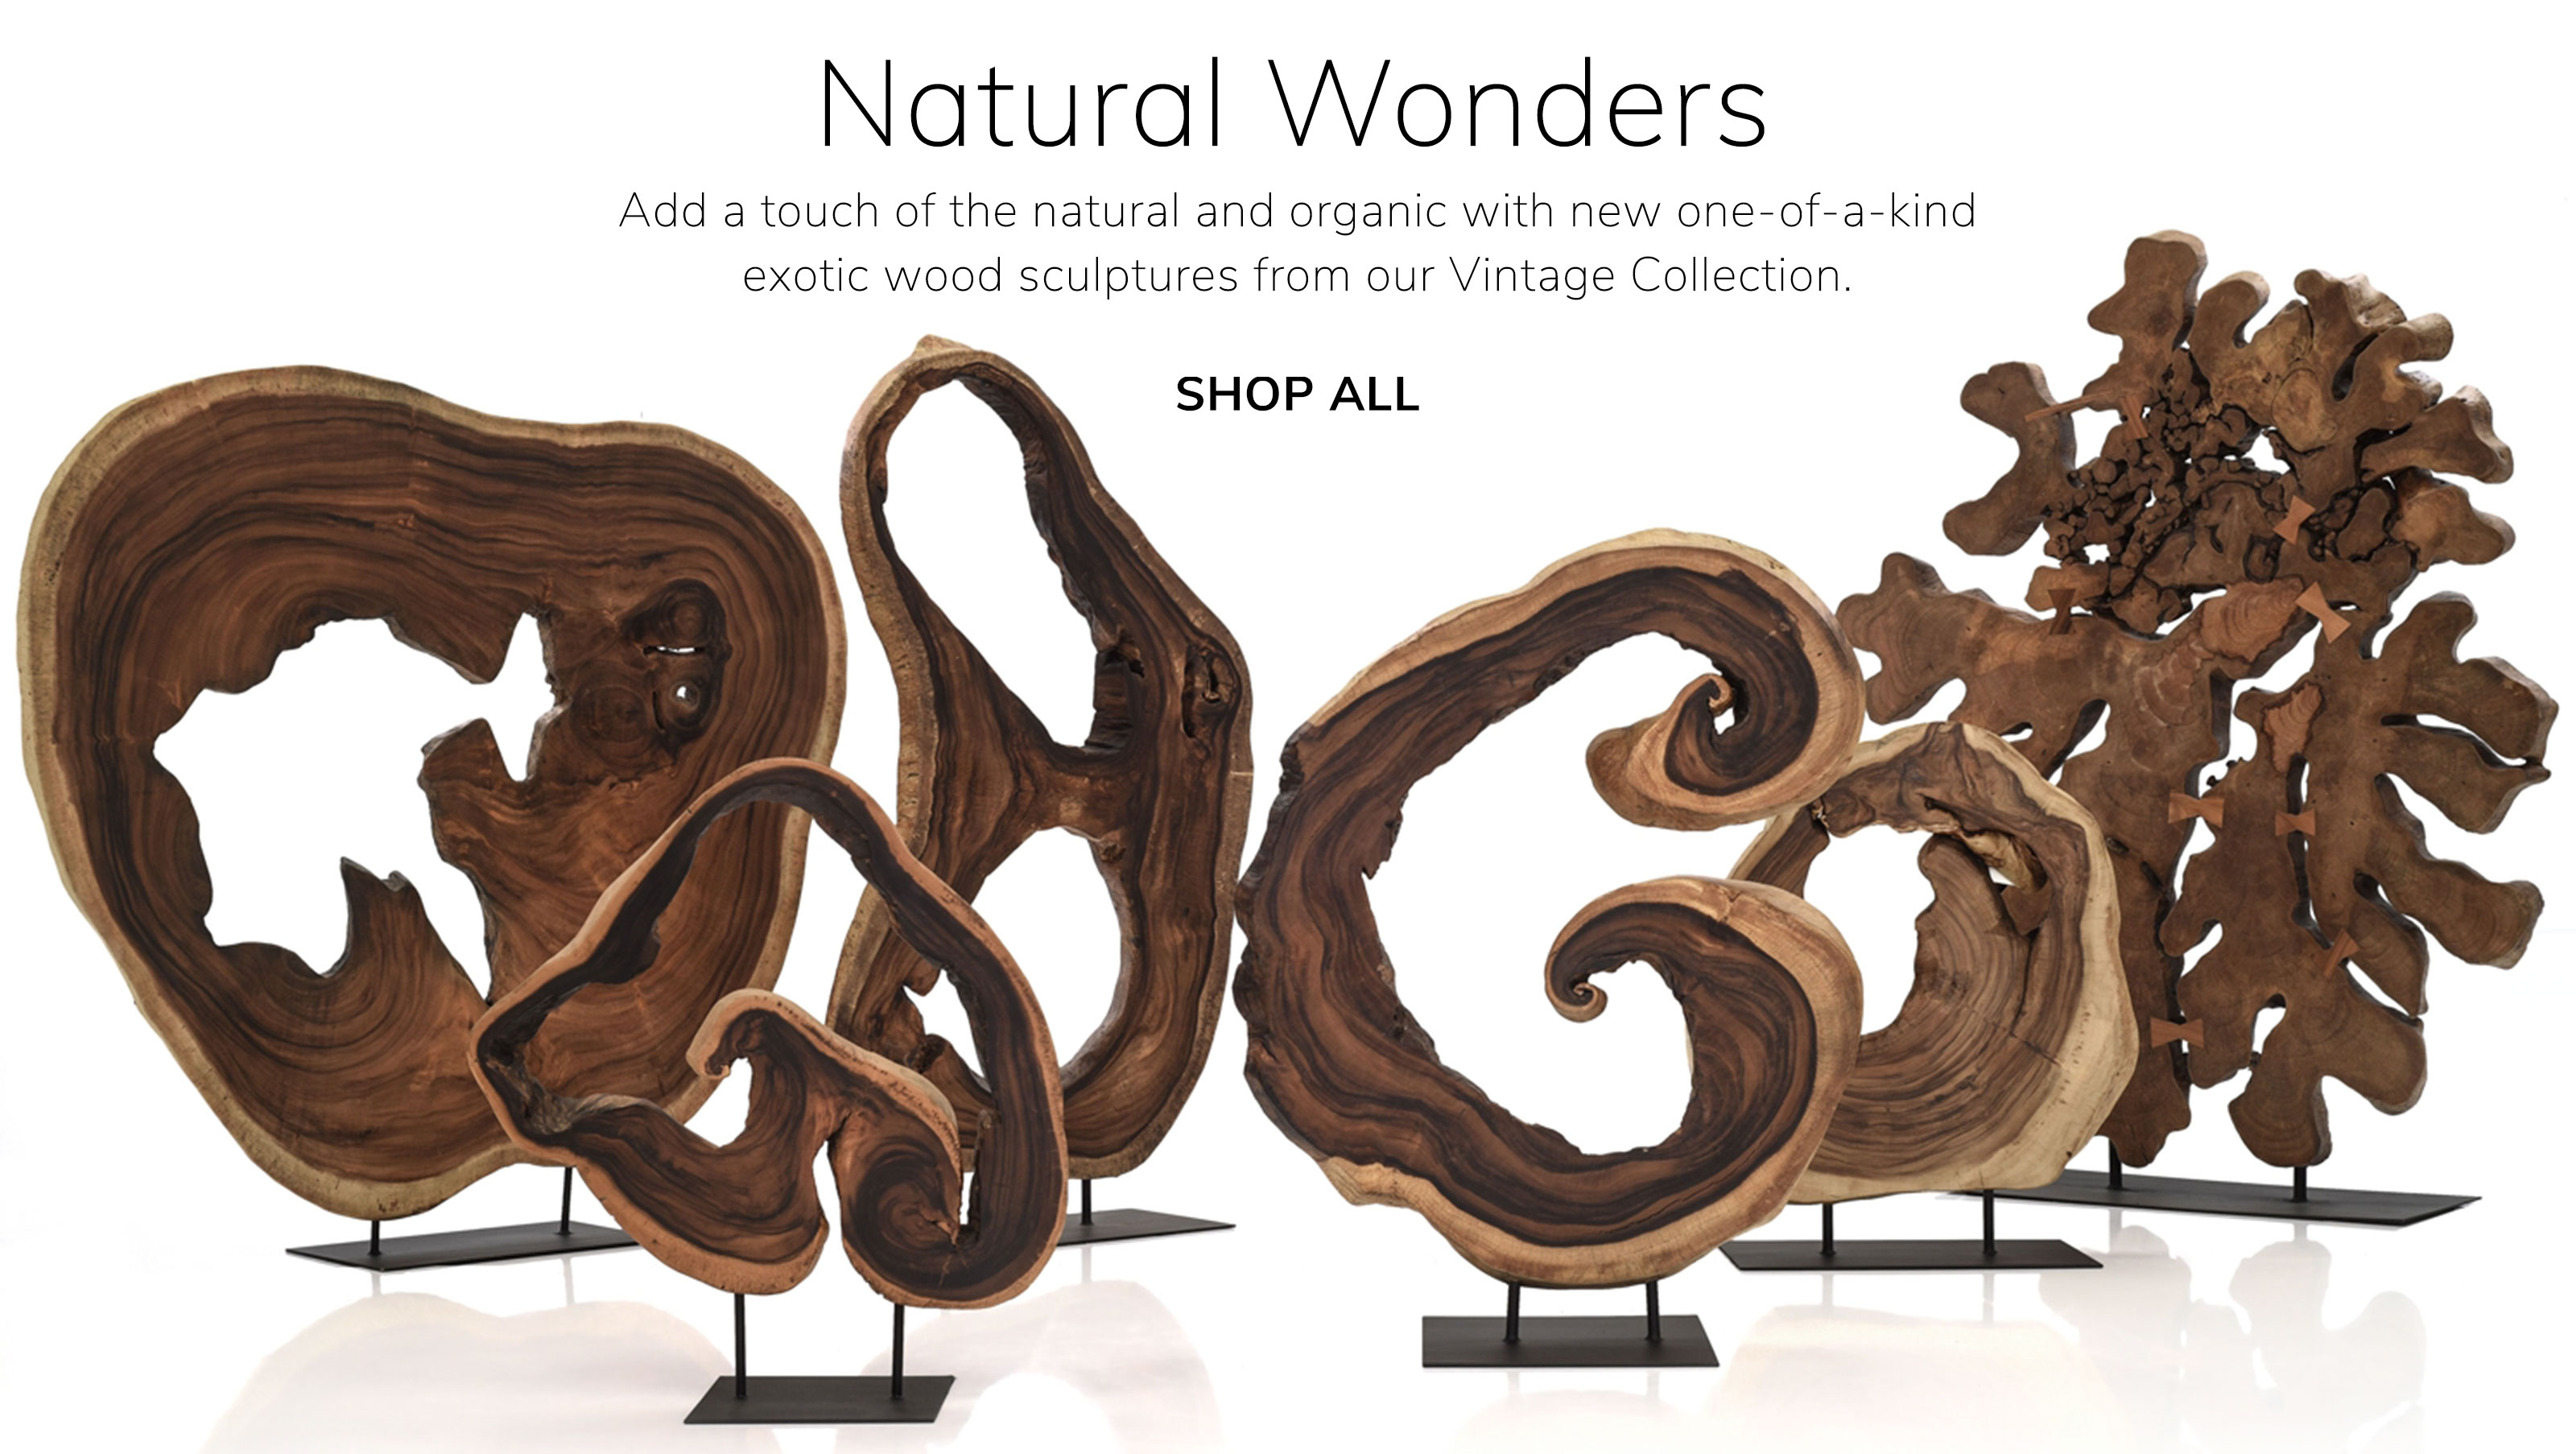 Vintage Sculpture Collection